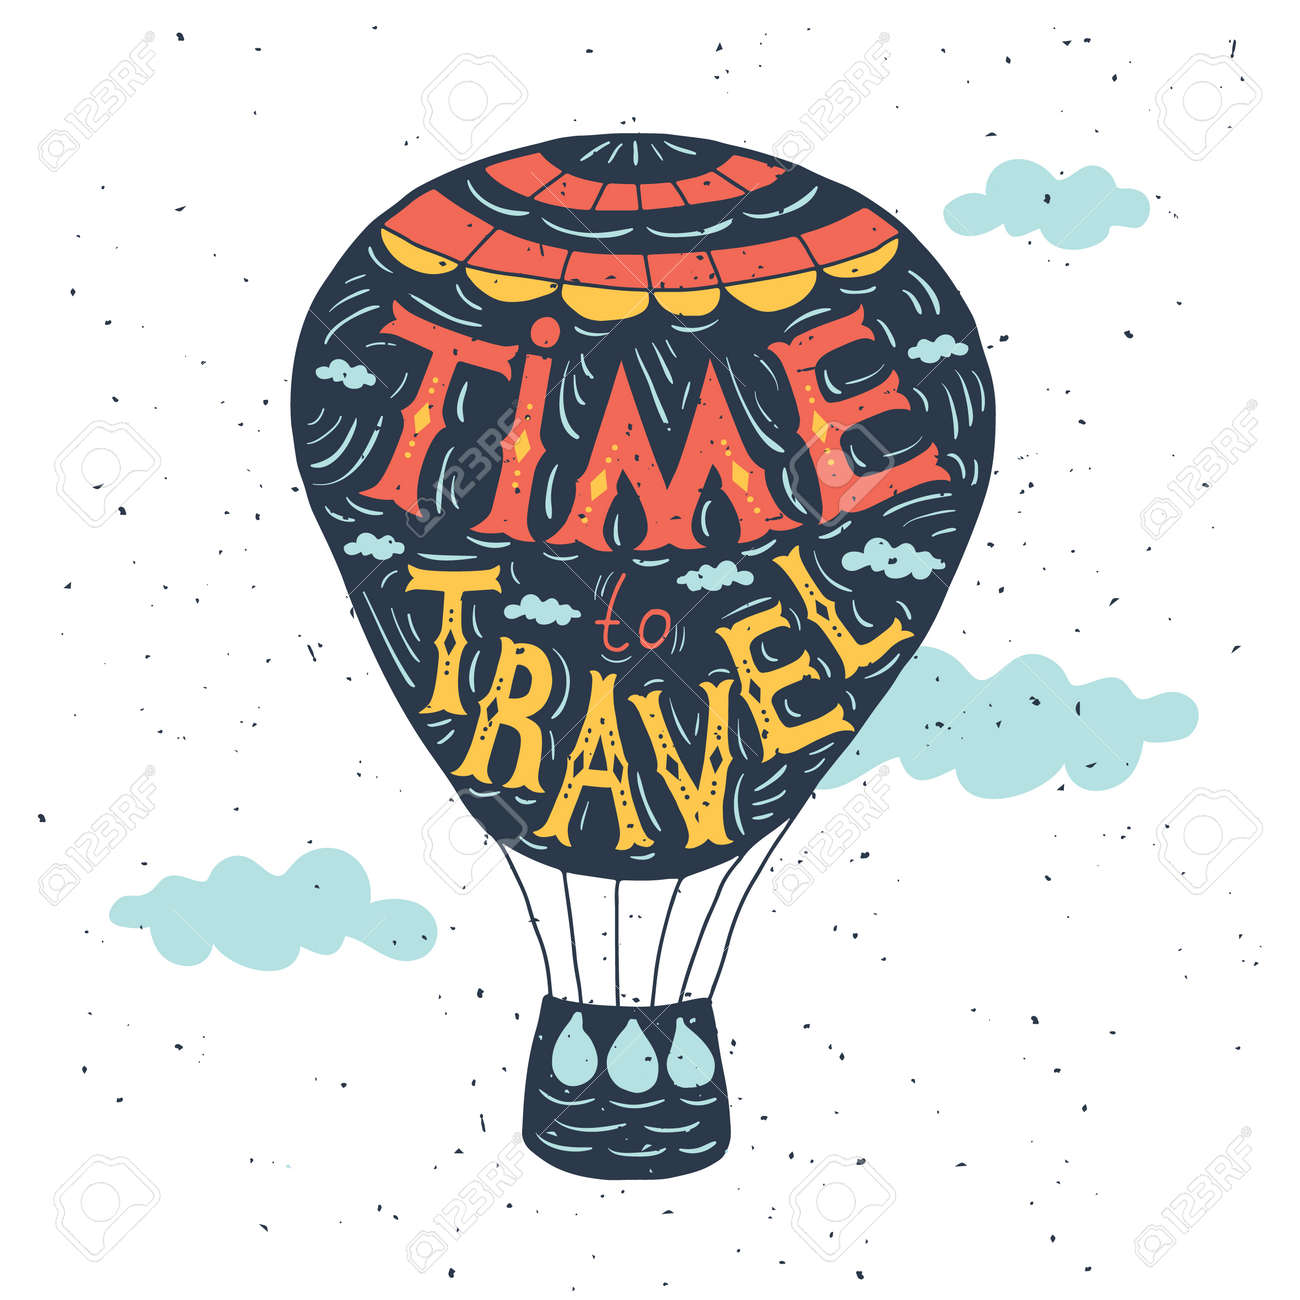 Typography Poster Quote On The Air Balloon Time To Travel